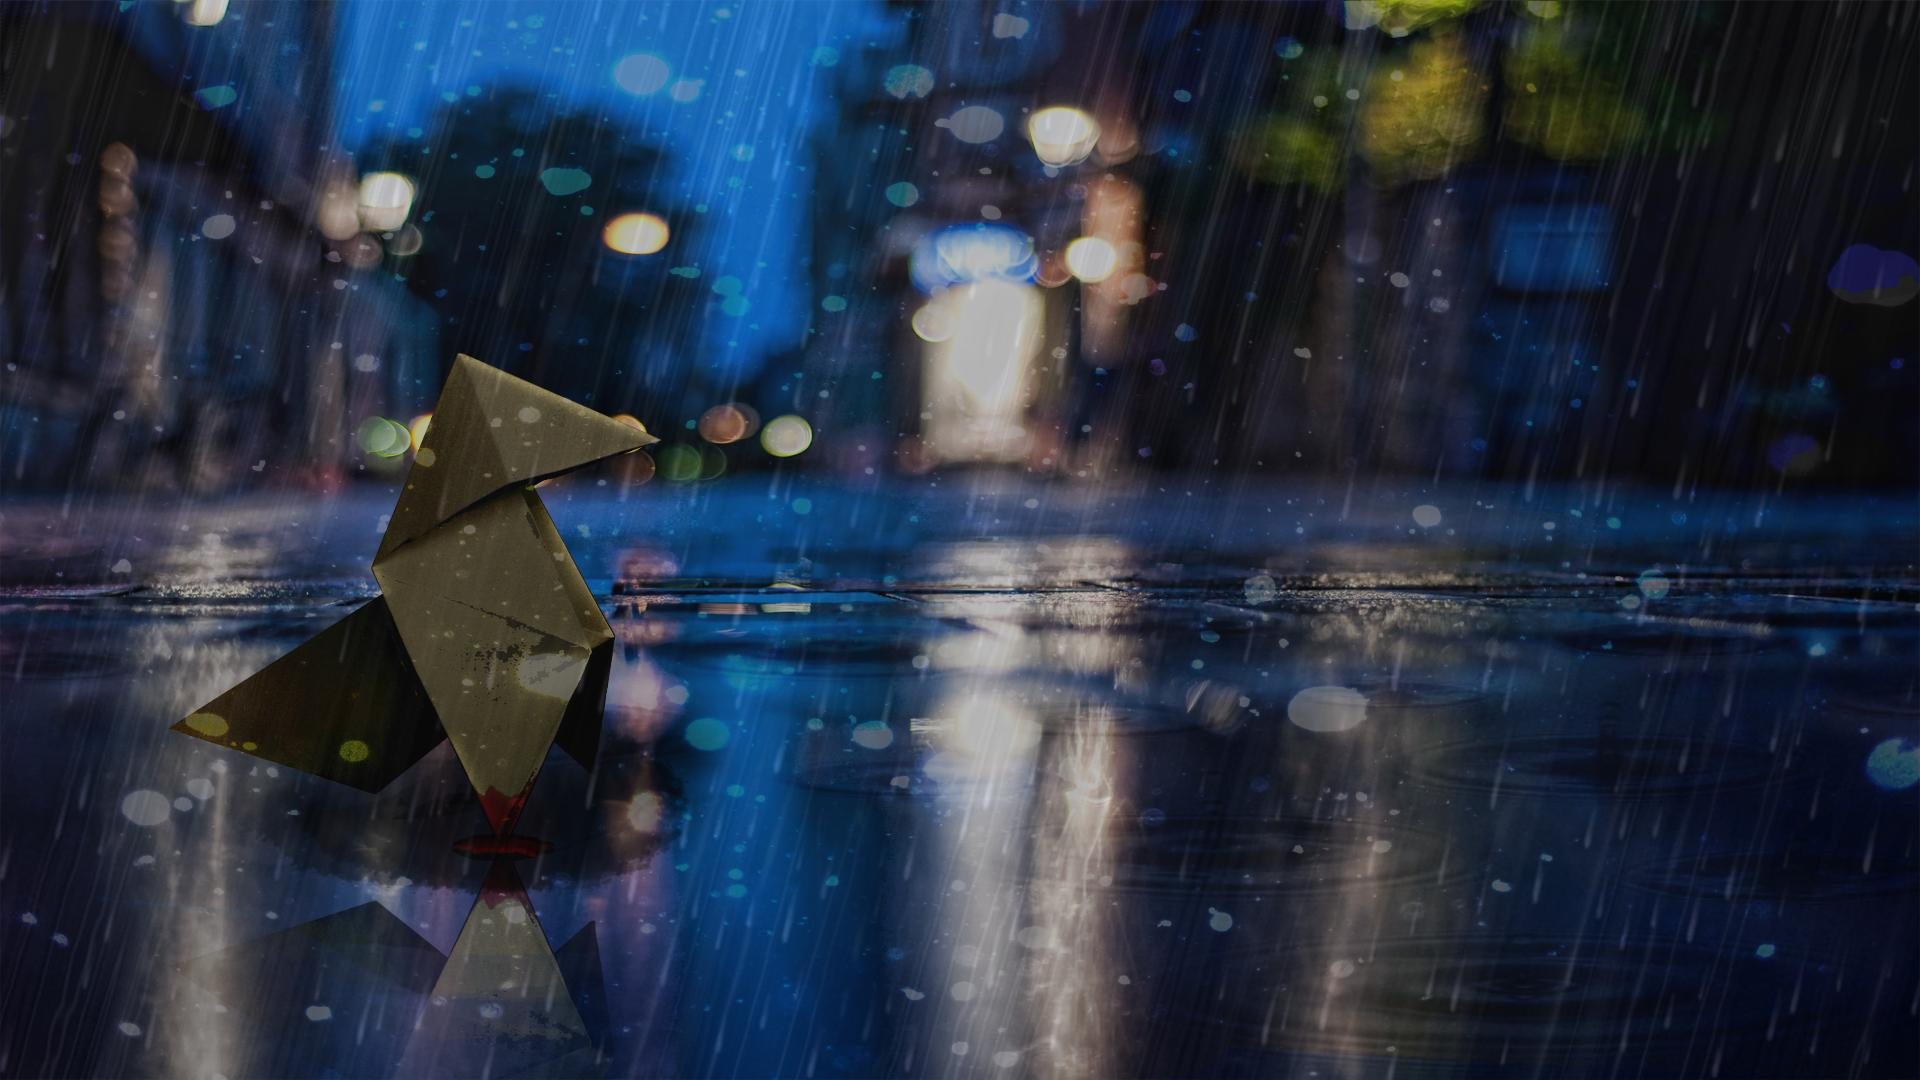 Rainy Pictures Wallpapers 37 Adorable Christmaslights001 Season Scenery Selected Beautiful 19201080